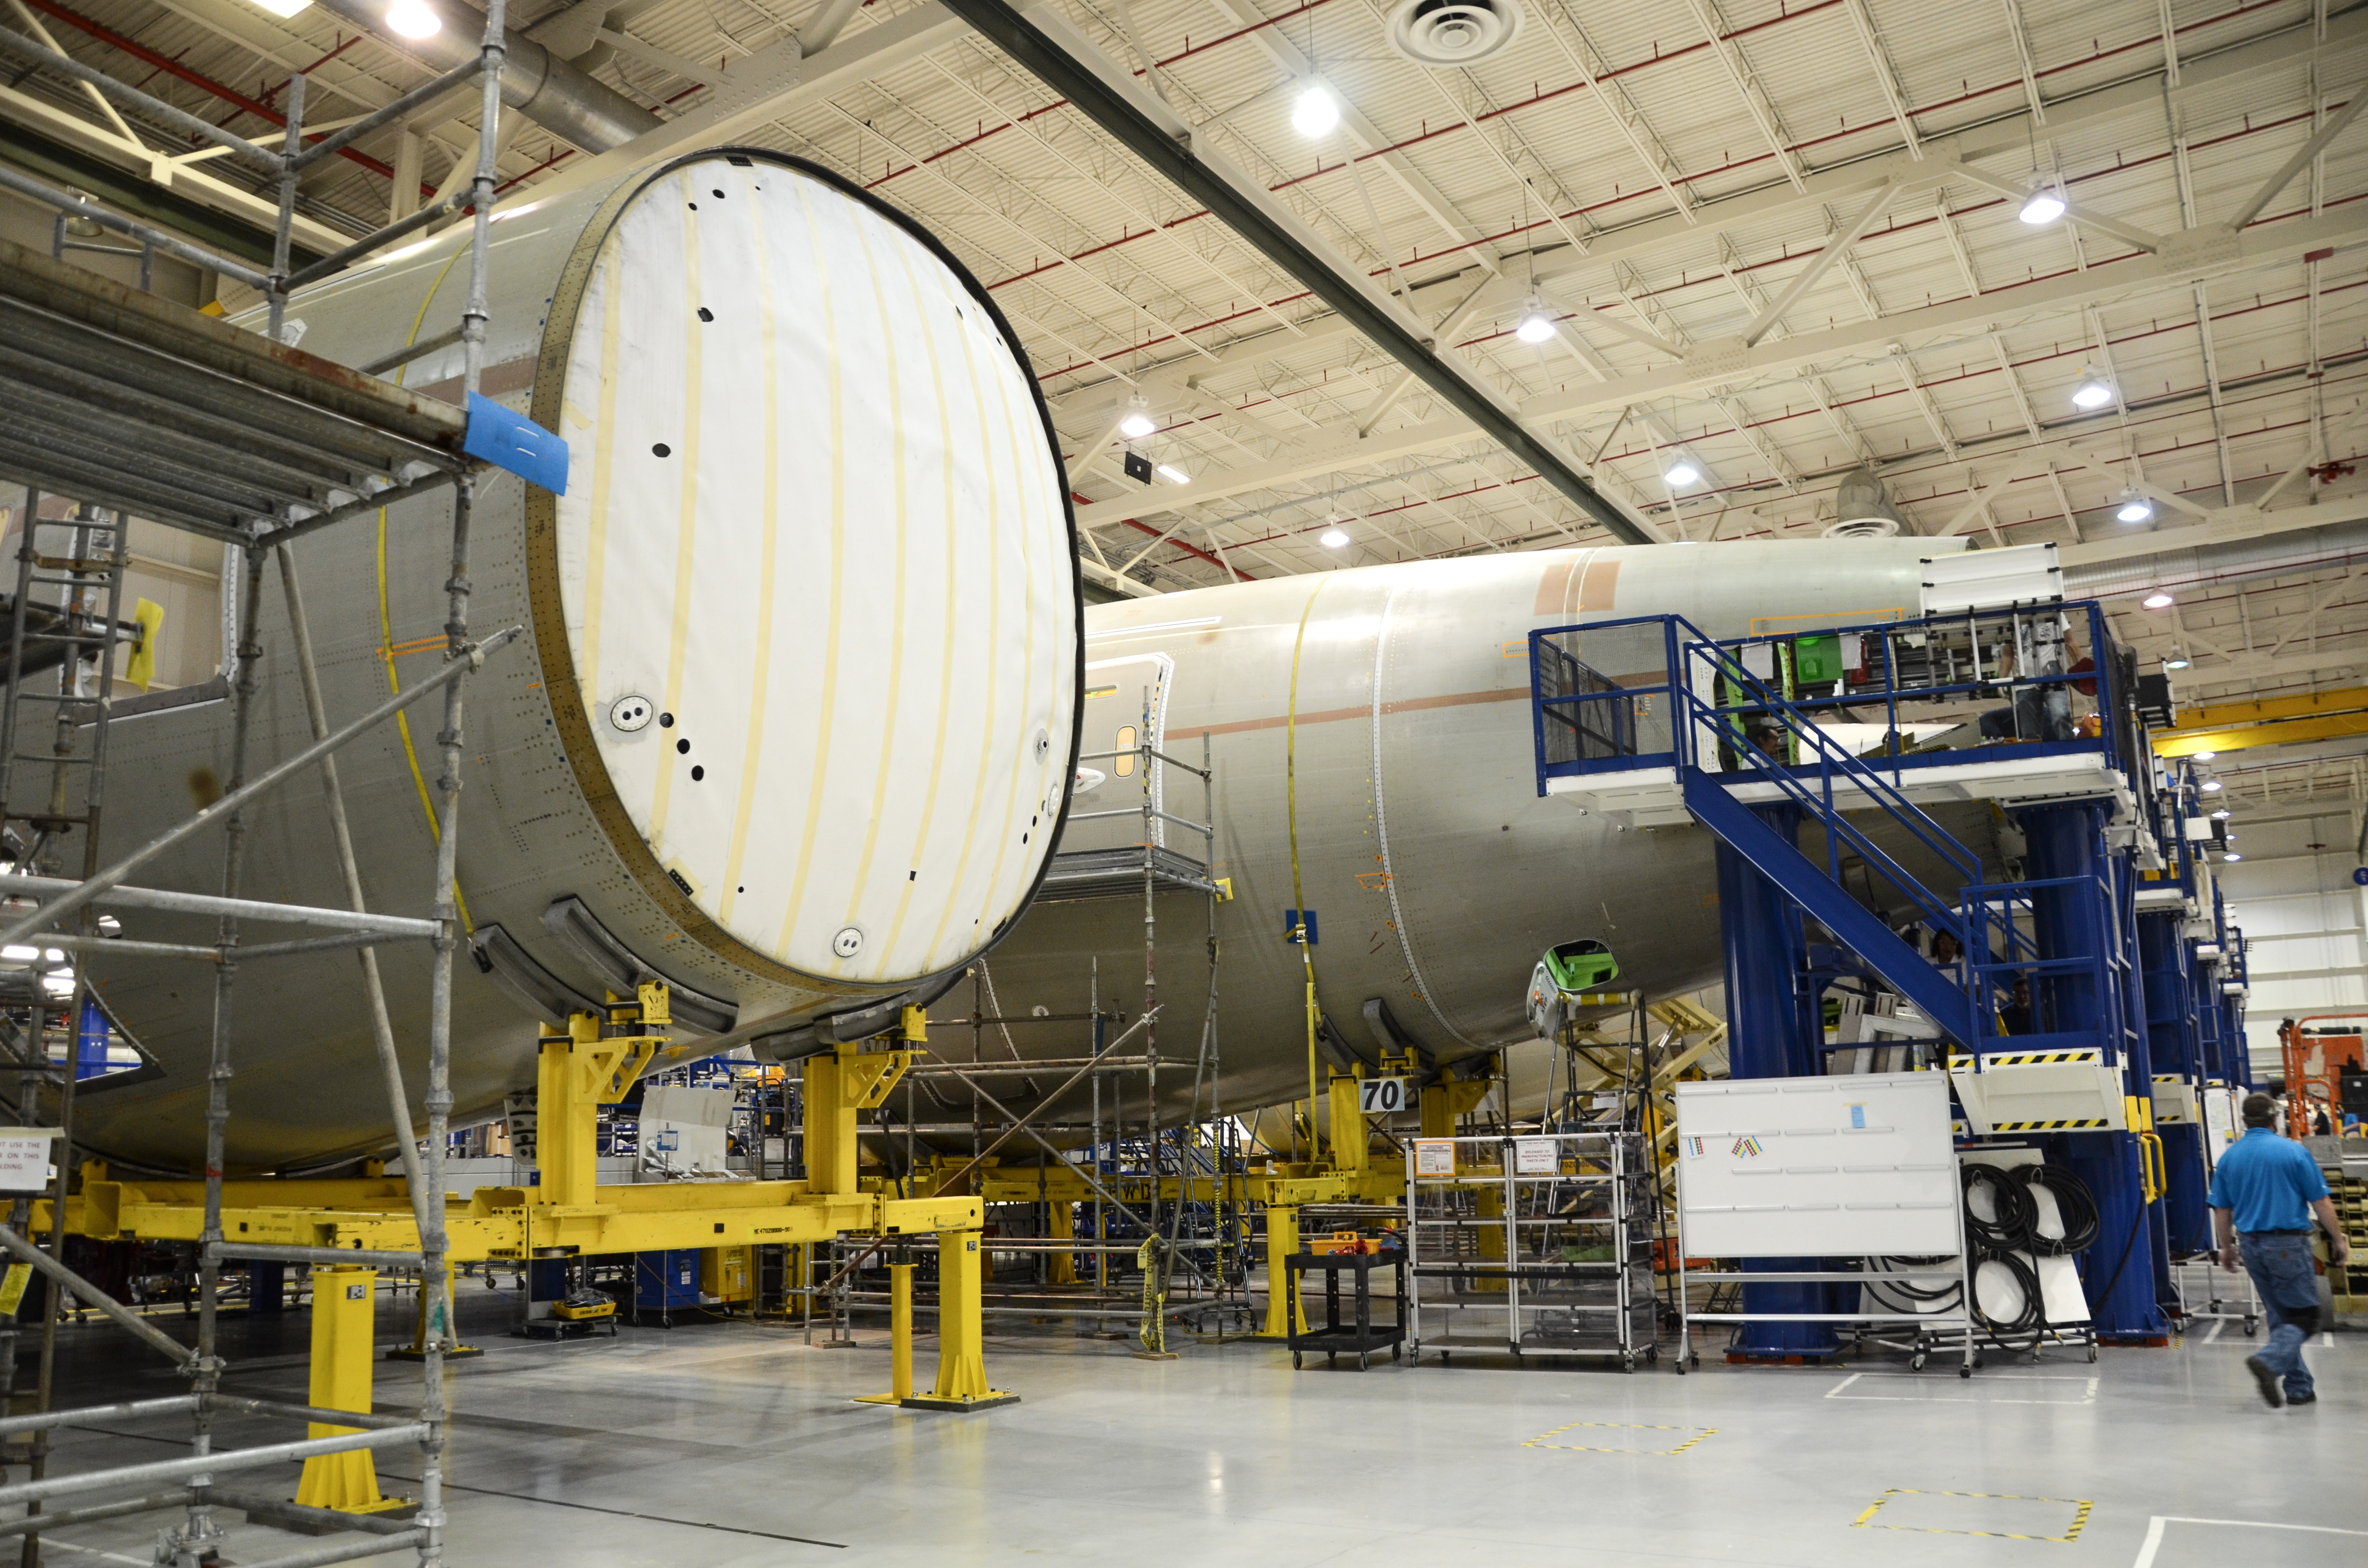 The large white structure is the pressure bulkhead inside the Section 47 barrel of the 787 Dreamliner. The unpressurized section 48 is then mated to section 48 before shipment to final assembly.